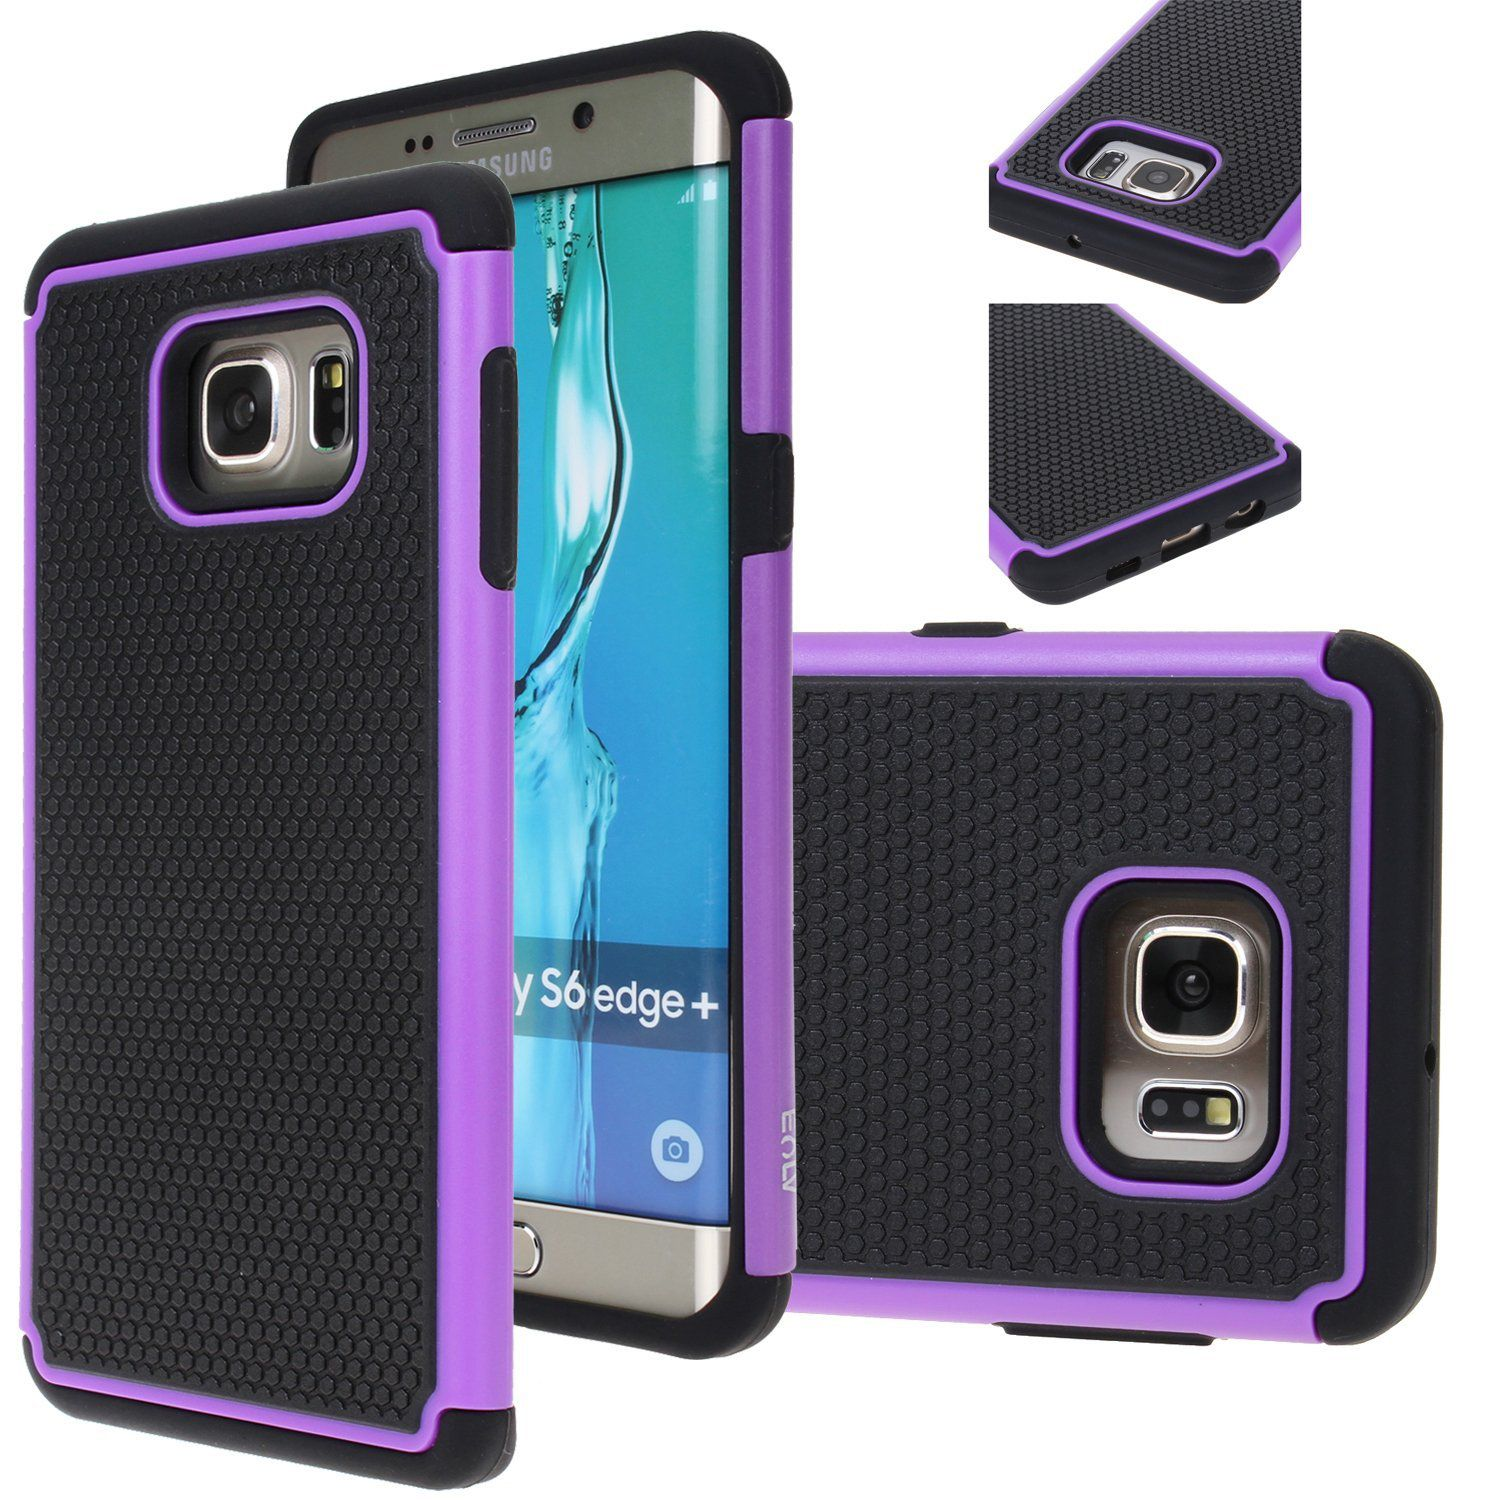 Galaxy S6 Edge Plus Case E Lv Samsung Shock Protection Proof Defender Slim Cover Full From Drops And I